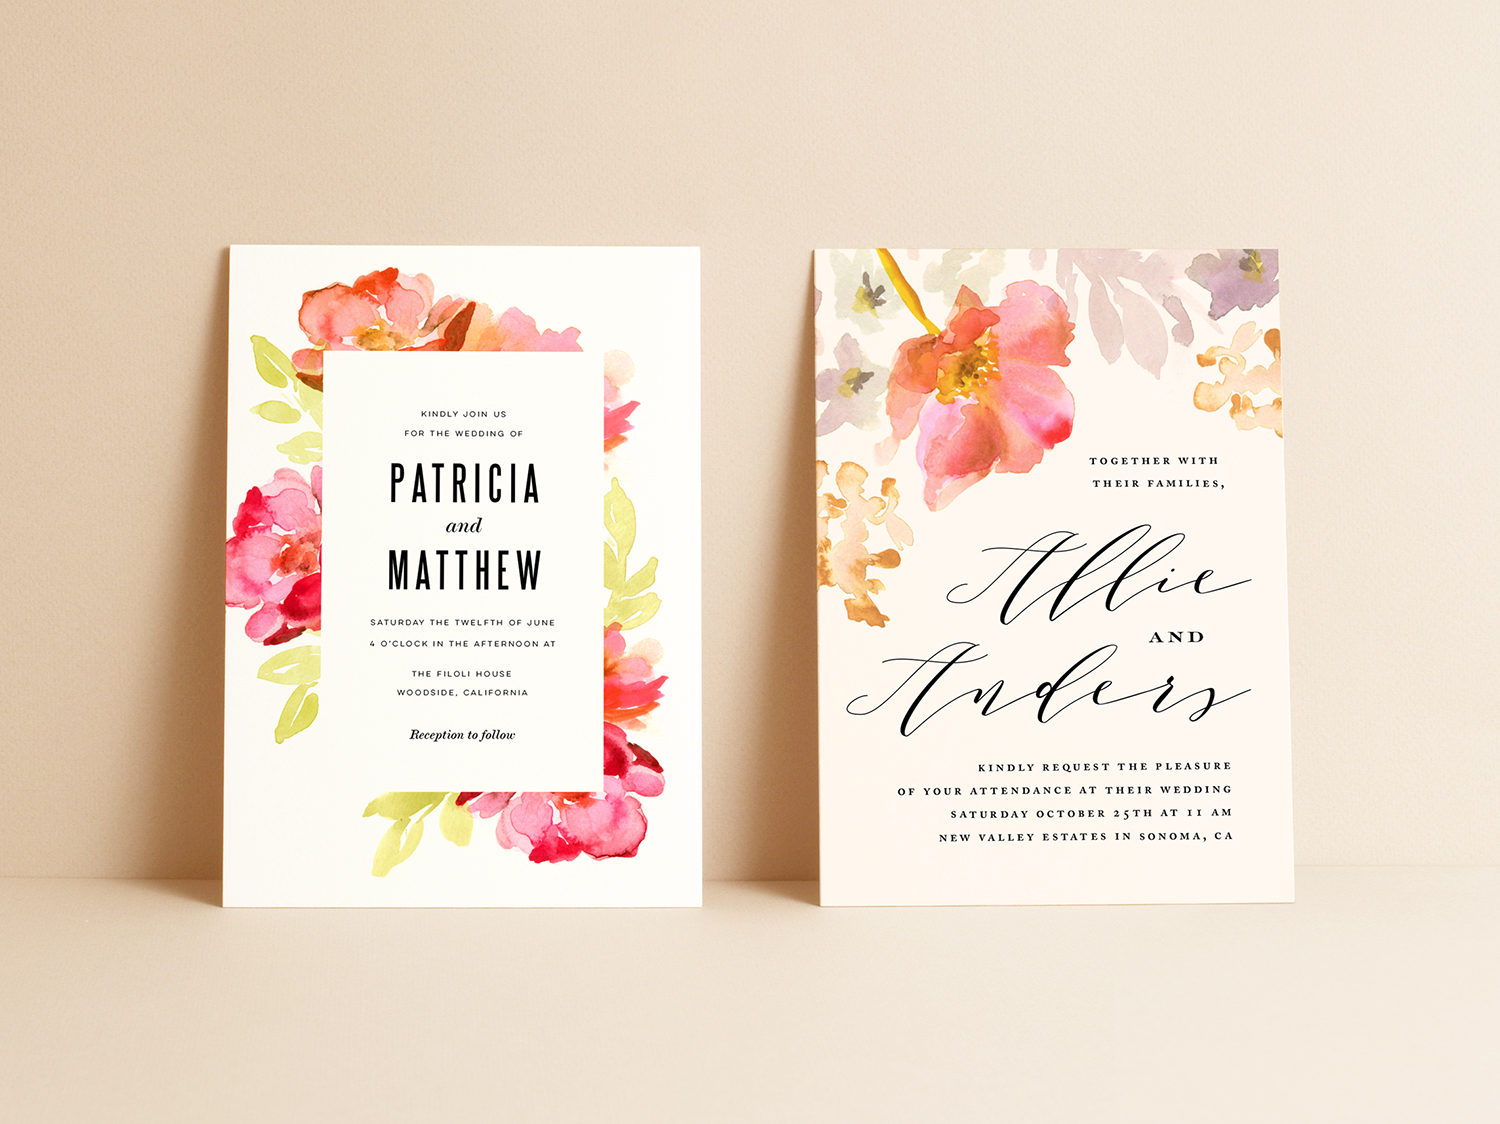 Wedding invitation design and illustration for Minted.com